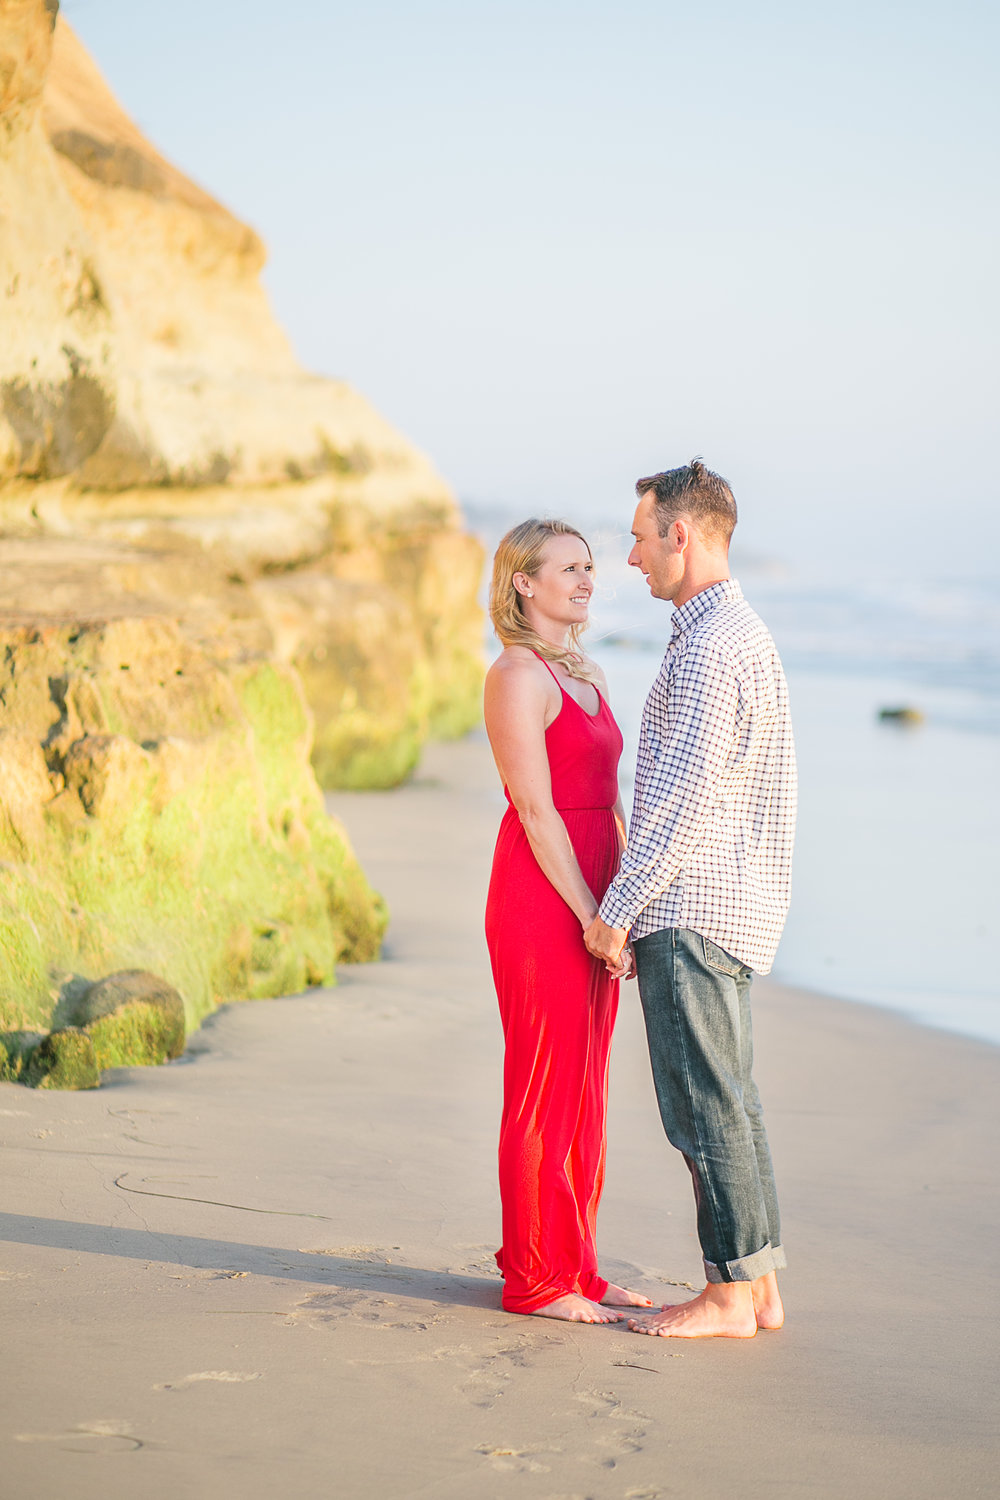 Heather_Smith_&_Chad_Patteson_San_Elijo_Lagoon_Solana_beach_Engagment_Session_2017-12.jpg